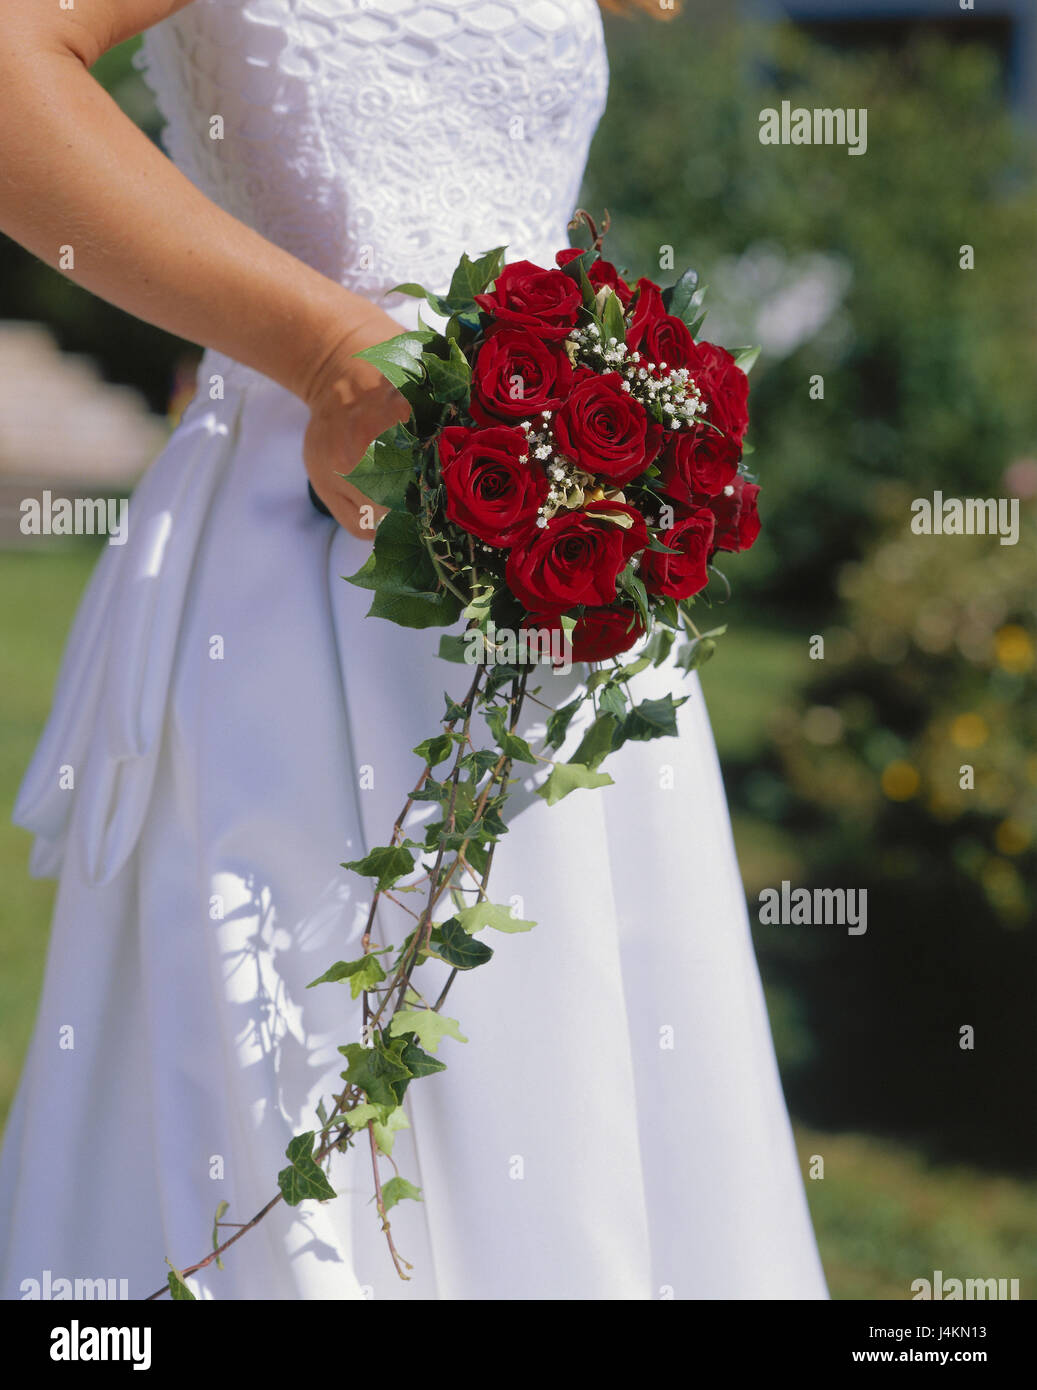 Mariage Mariee Detail Bouquet Roses Rouge Occasion Fete